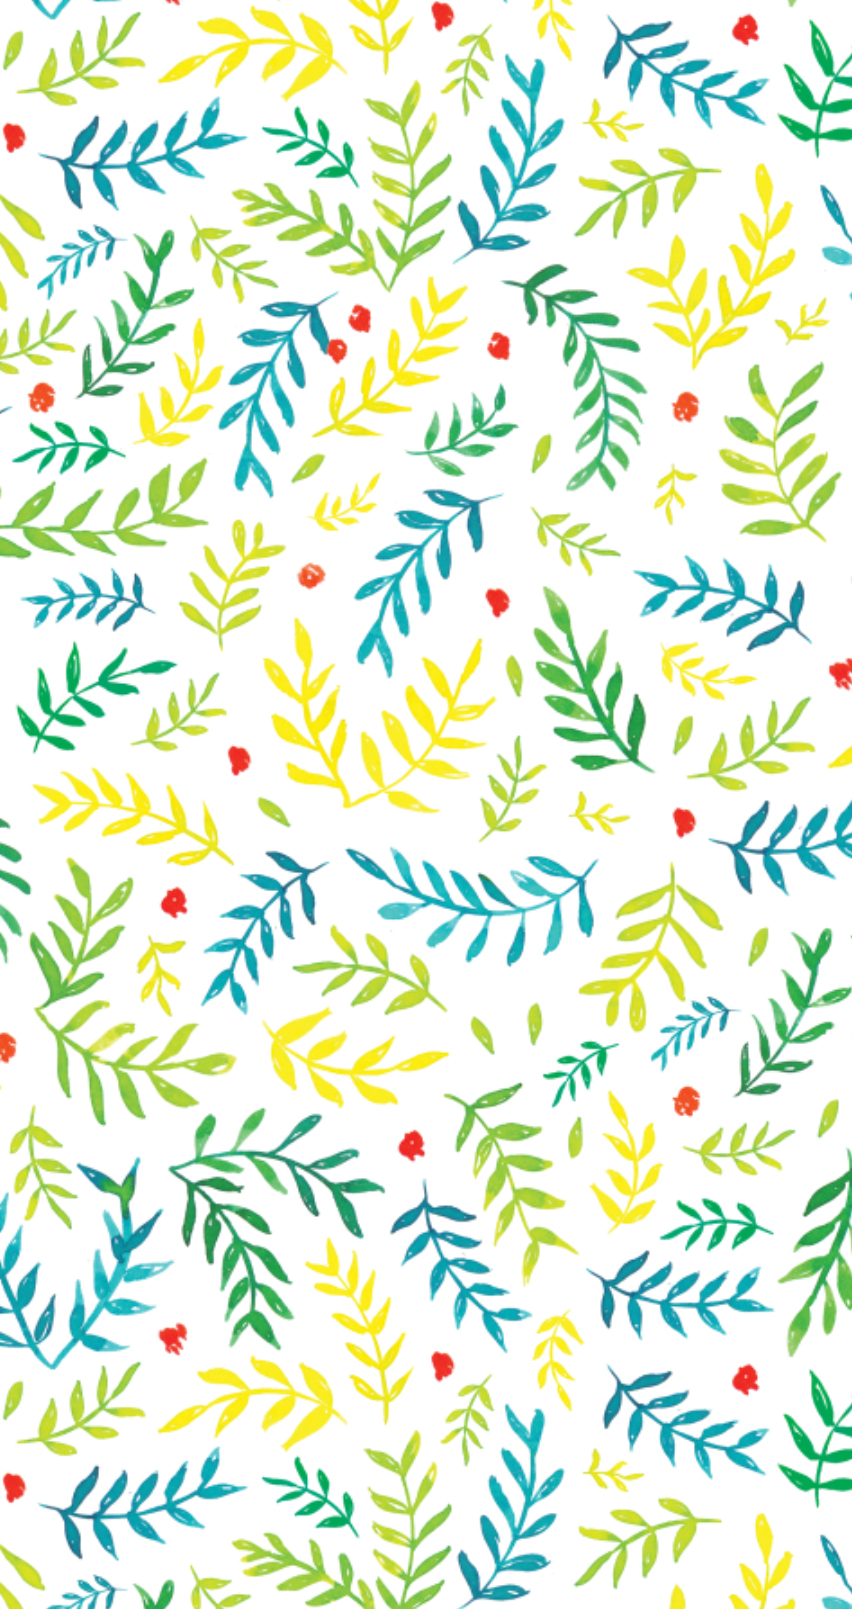 Christian Fall Iphone Wallpaper Made With Love And Watercolor Illustrations Made With